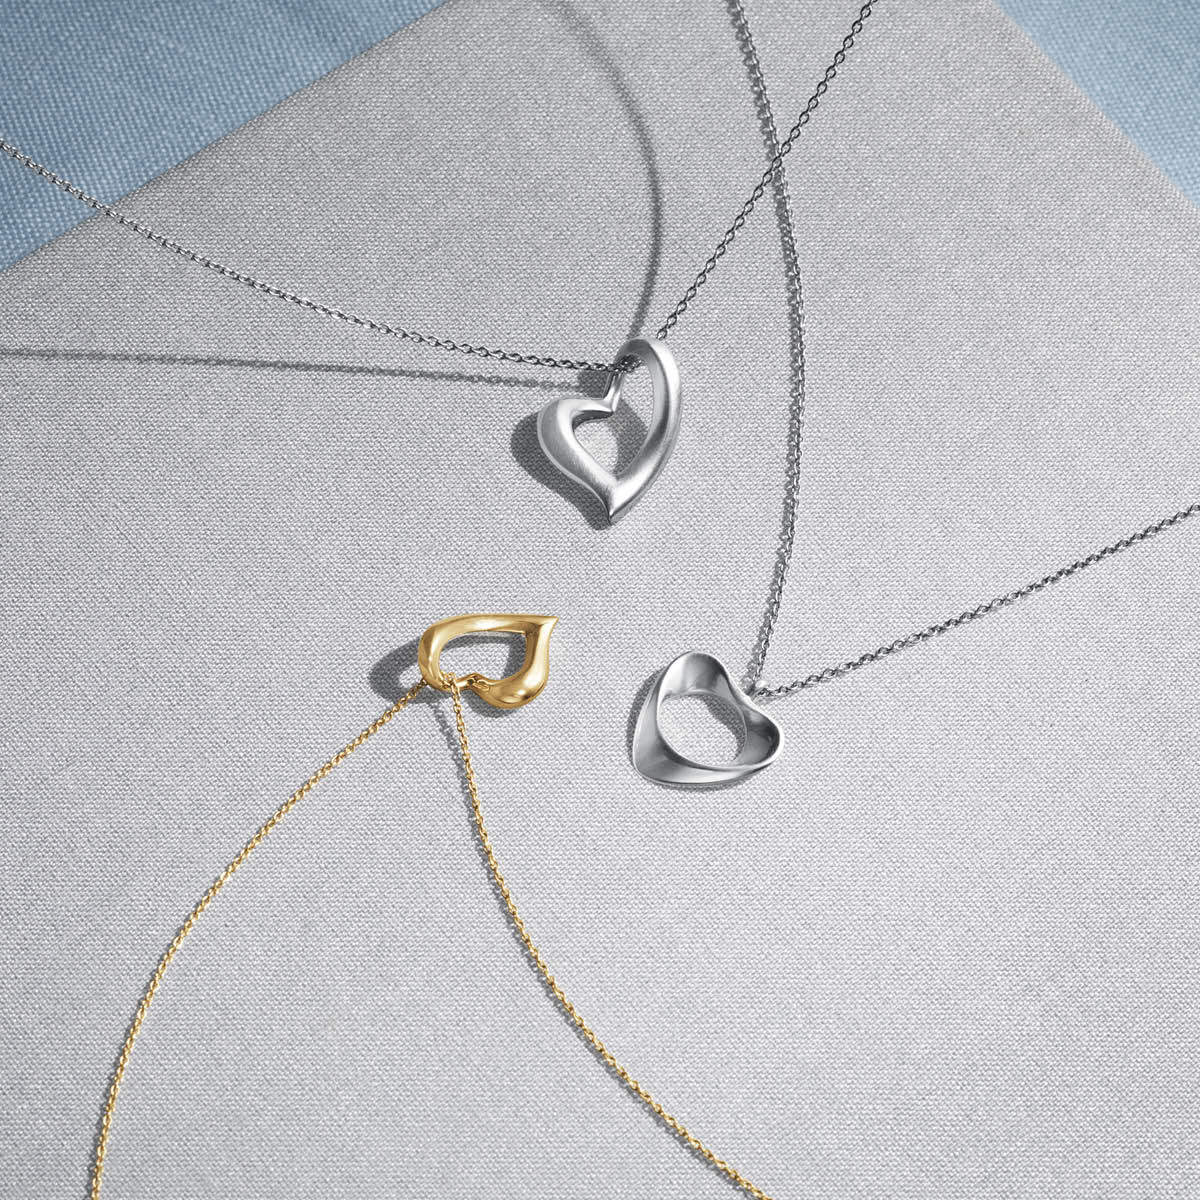 Georg Jensen Jewellery Hearts of Georg Jensen 994E 喬治傑生 心型系列, 真愛之心 K金項鍊